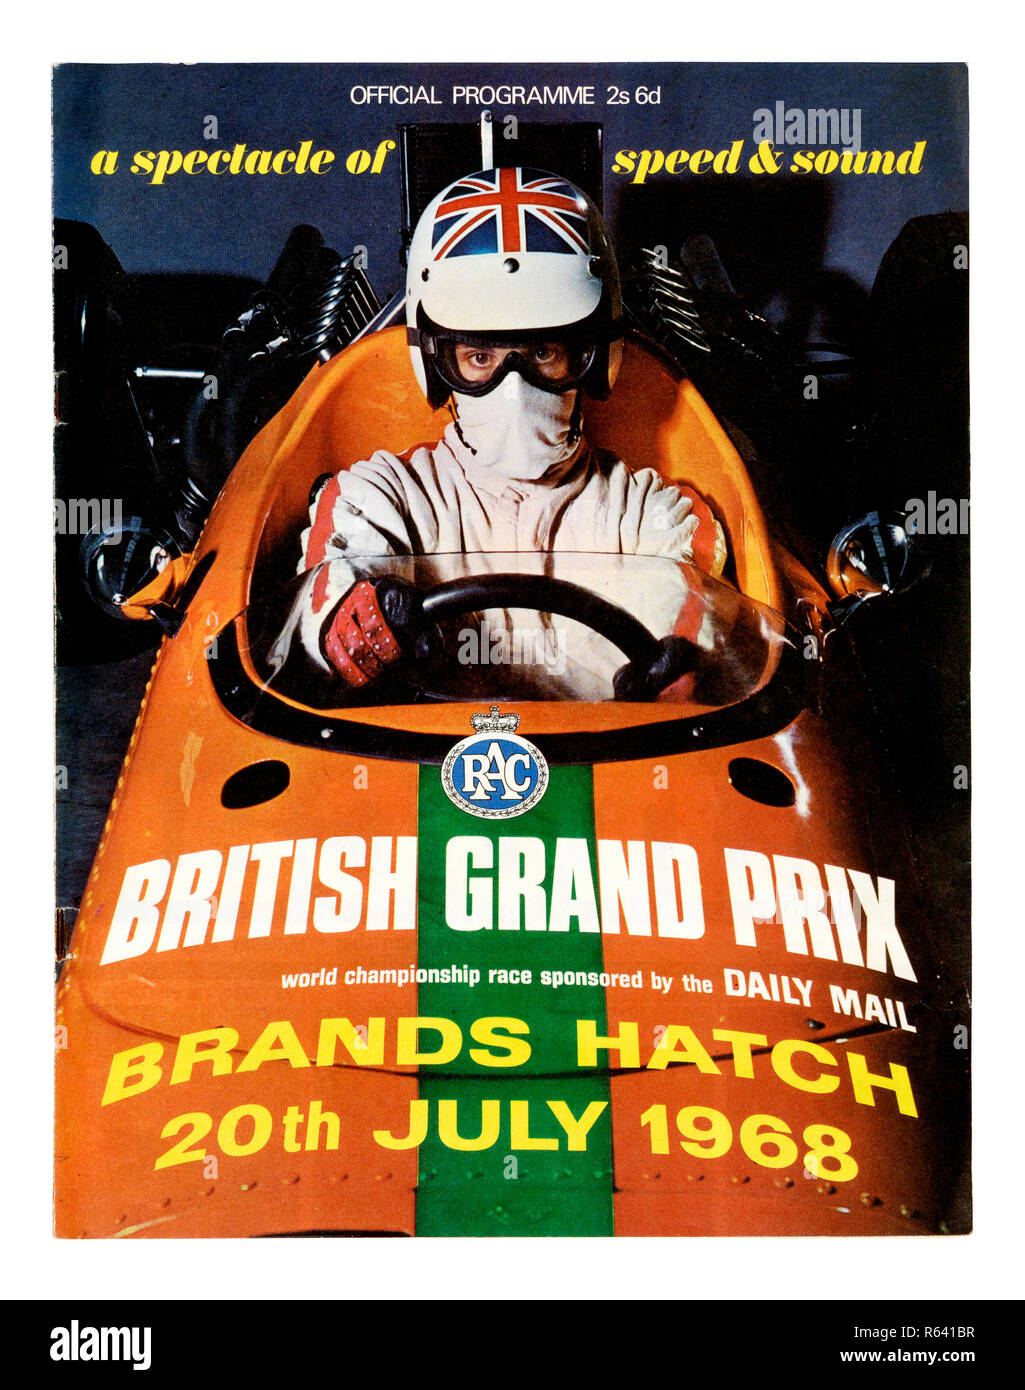 The front cover of a vintage official programme for the 1968 British Grand Prix Formula 1 race at Brands Hatch - Stock Image